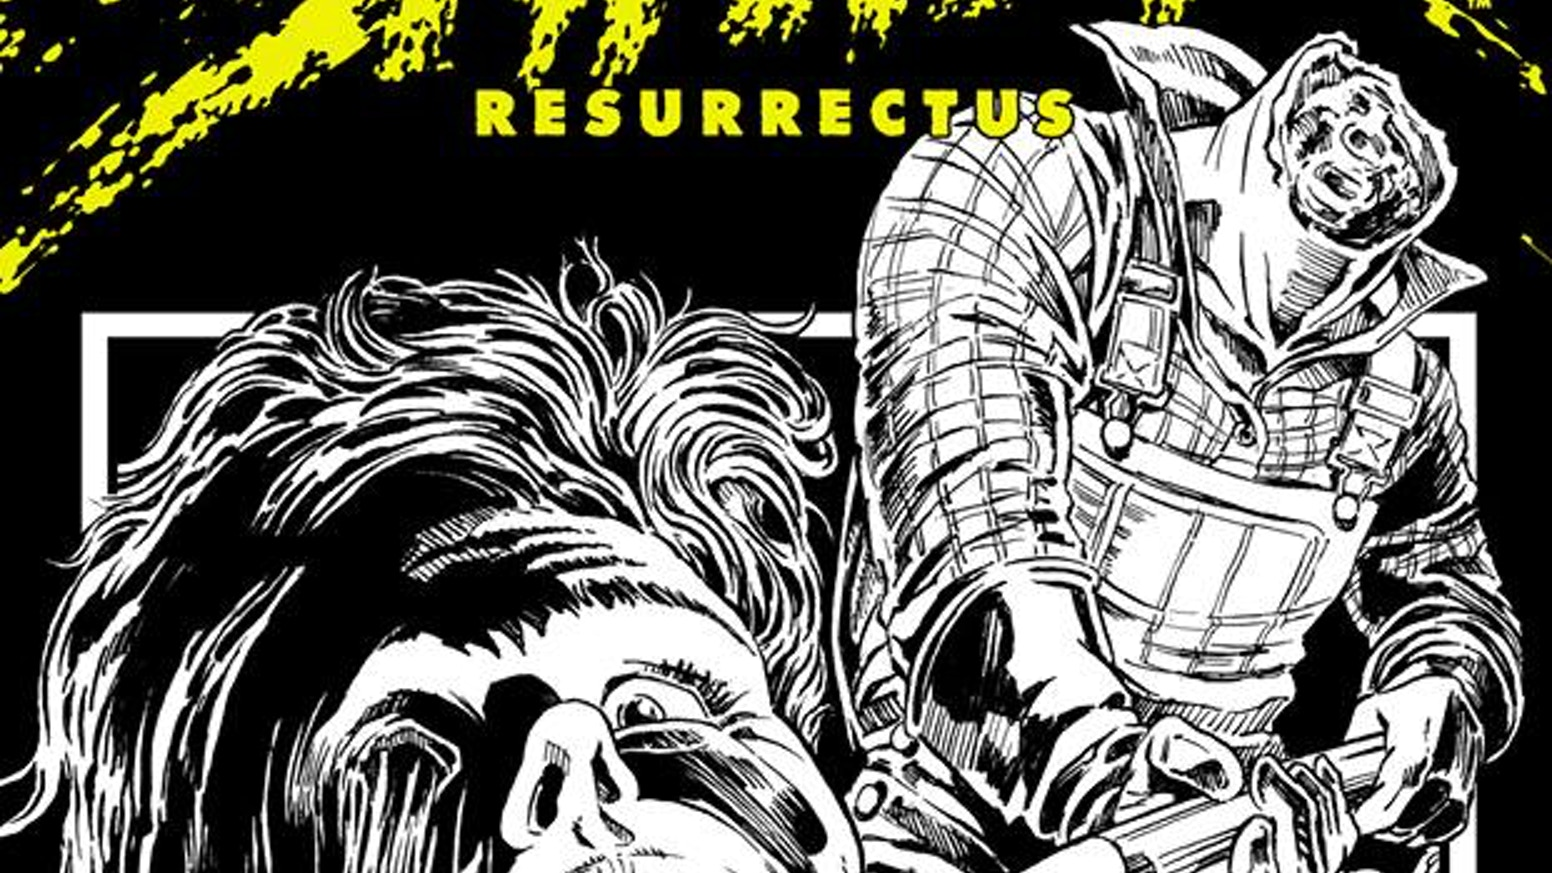 One of the most requested relaunches in comics history! Gore Shriek™ returns with ALL NEW stories to bite your face off! This First issue has been shipped and Issue #2 will have its own campaign in the Spring of 2017.